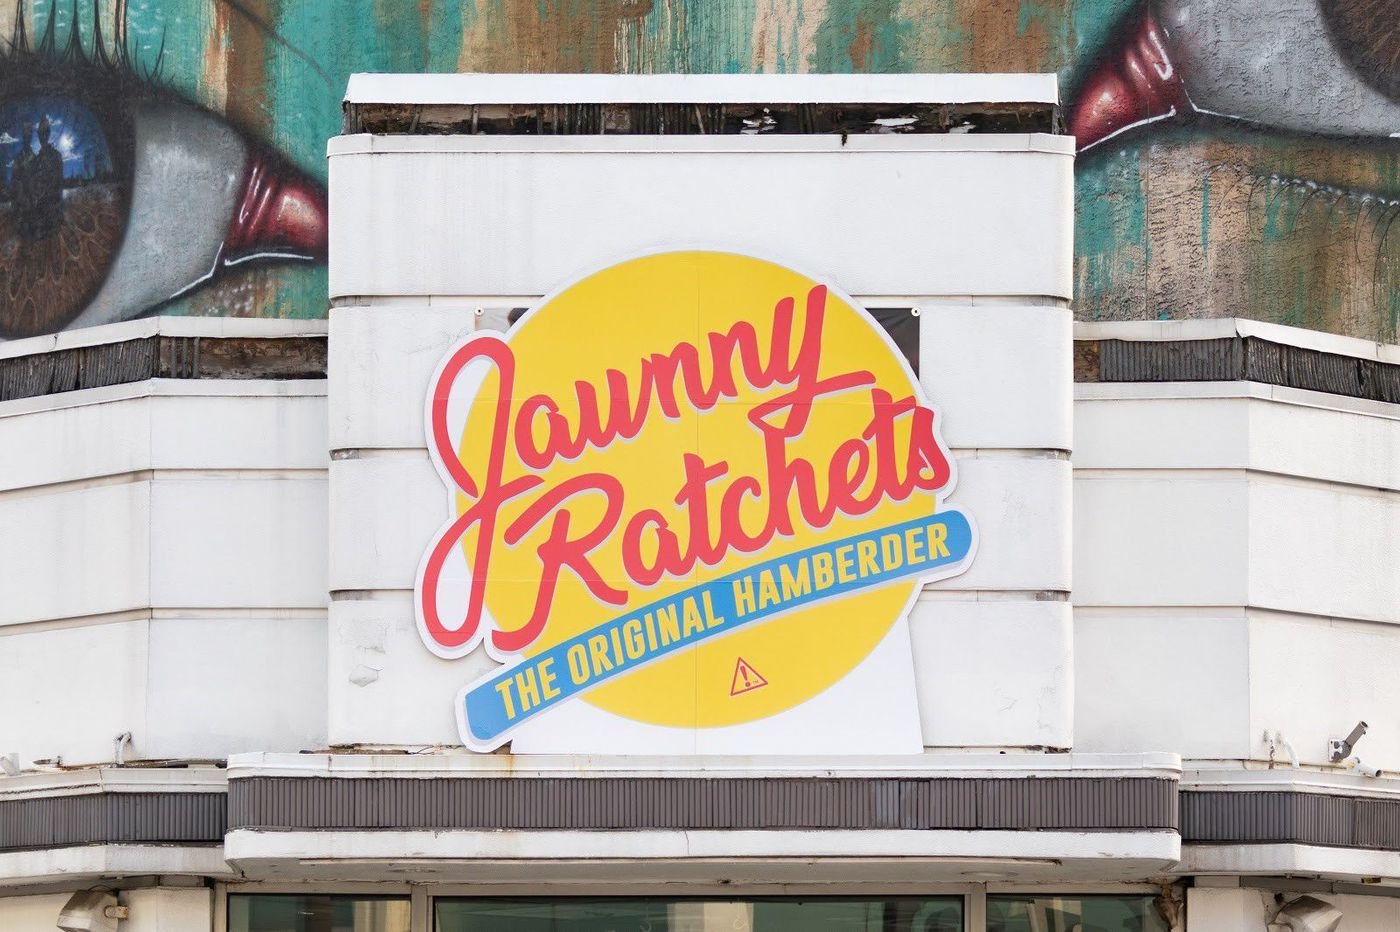 Jawnny Rachets? South Street's former Johnny Rockets gets a new sign, thanks to art installation